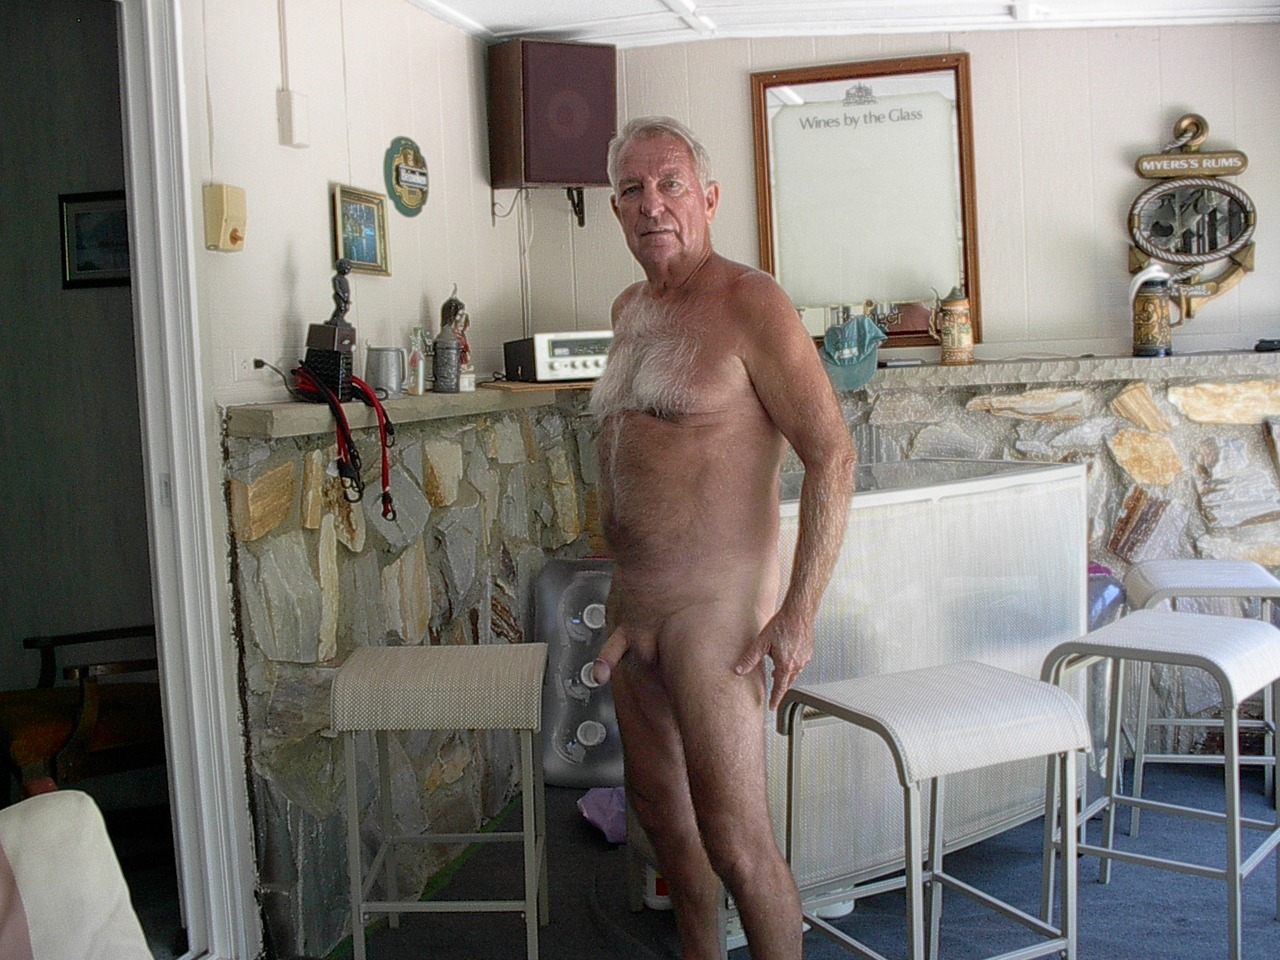 silvermen naked - male hairy naked - daddy senior